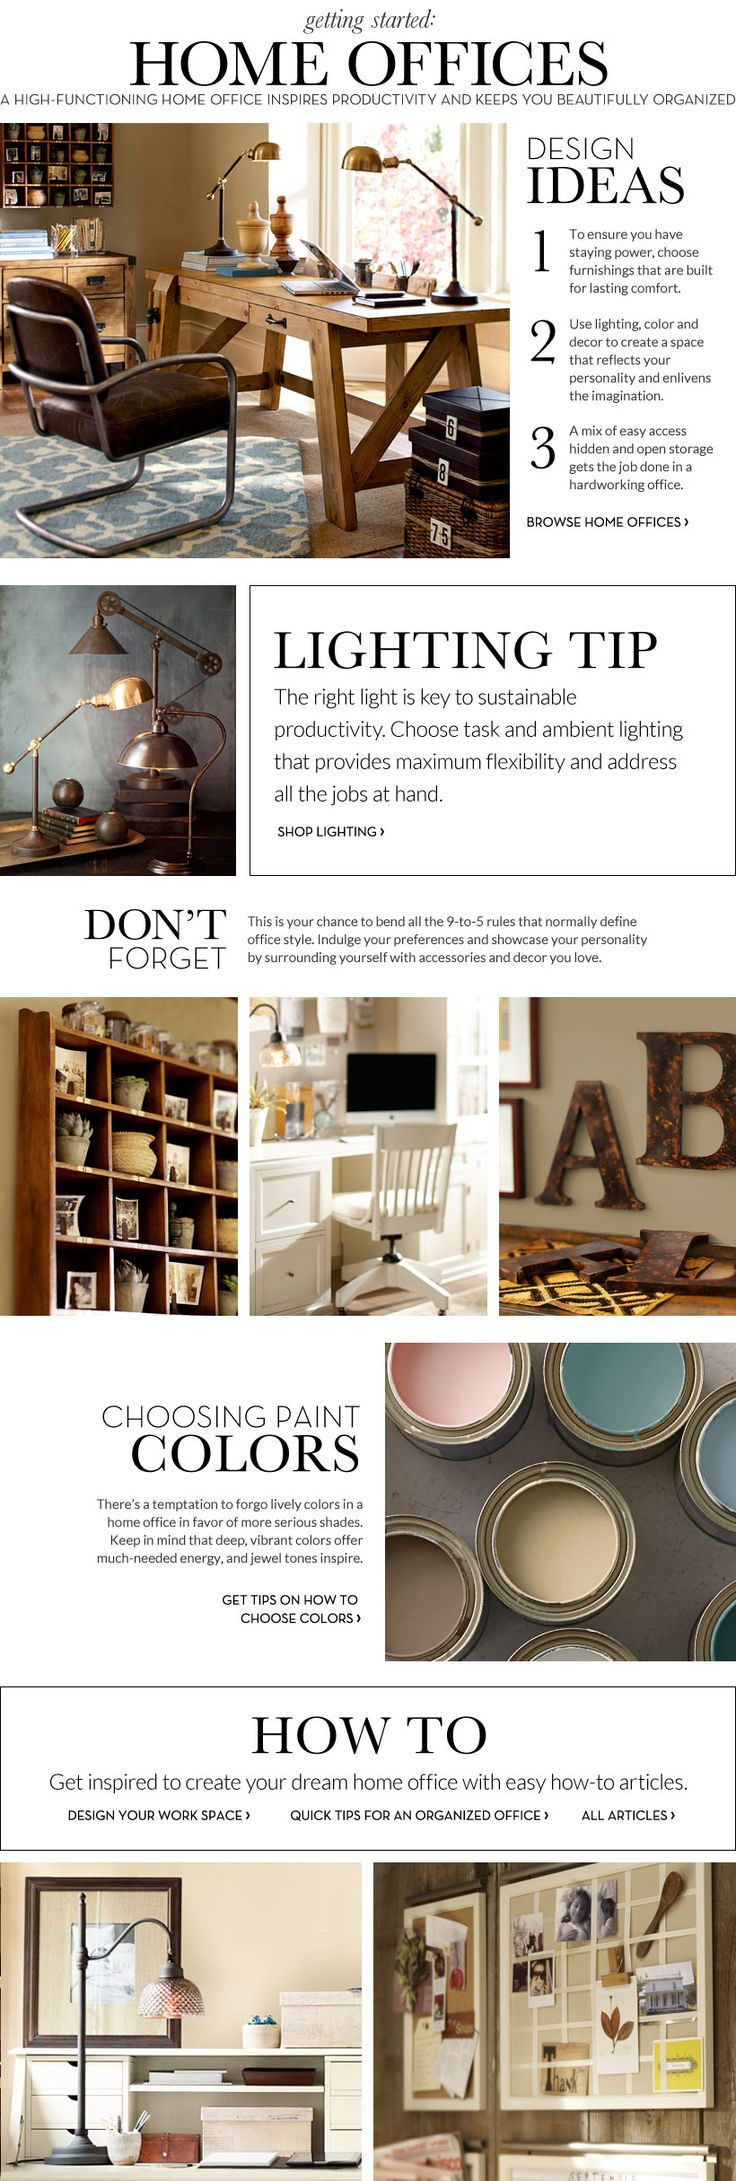 Home Office Decorating Ideas & Decorating Home Office   Pottery Barn